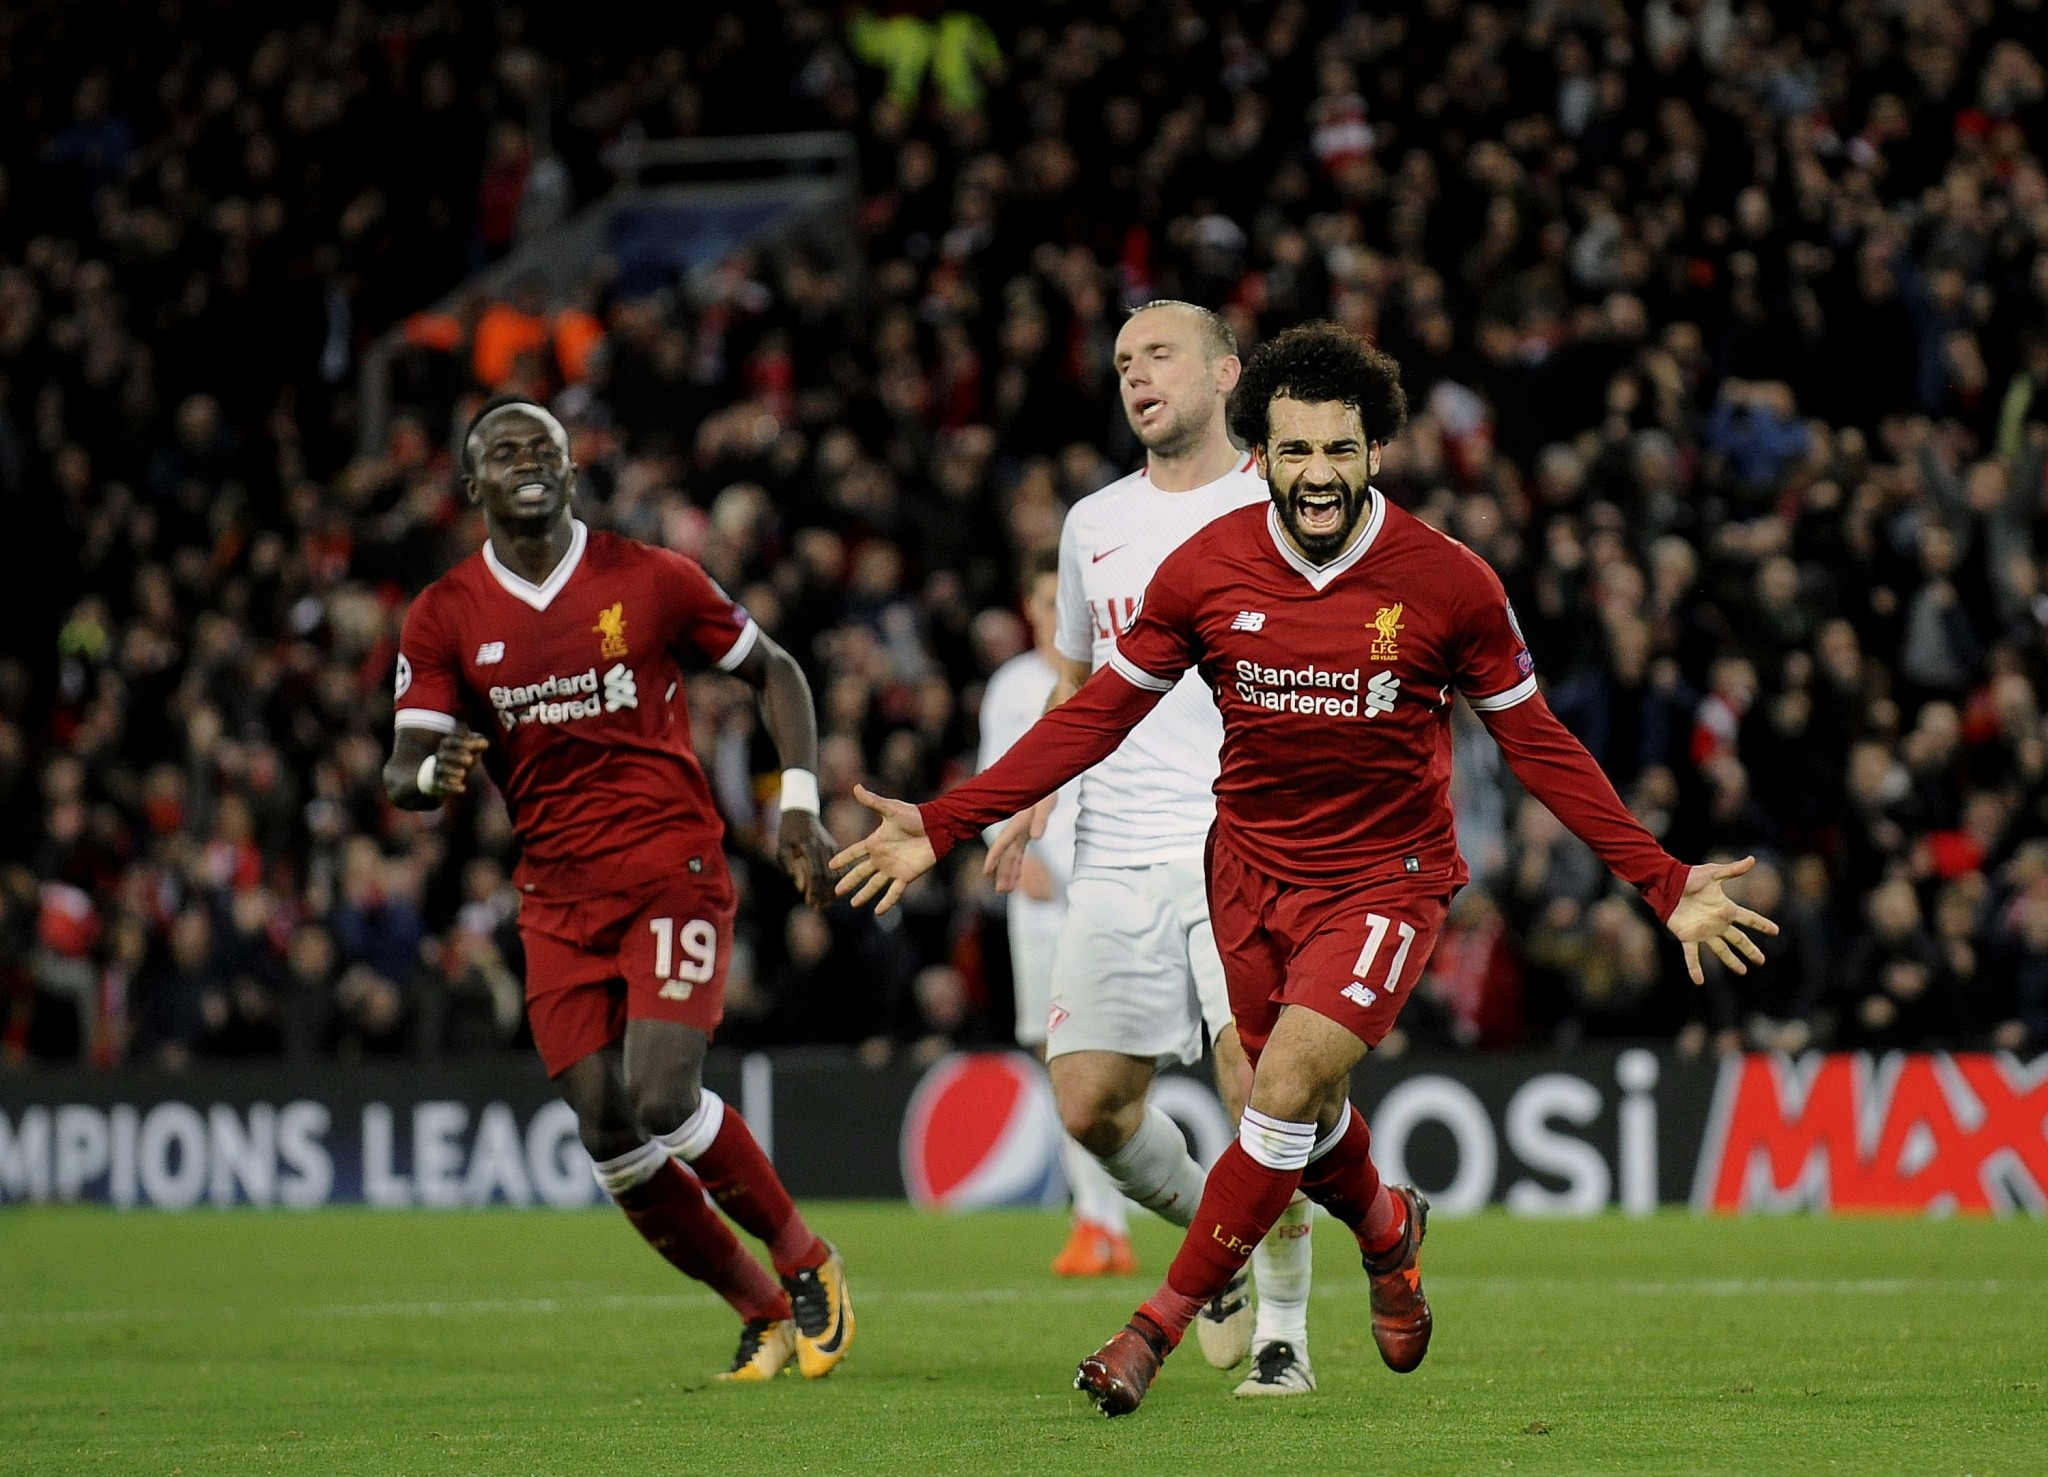 e6e0df969ab Salah s success offers hope in Egypt to soccer fans and authorities ...